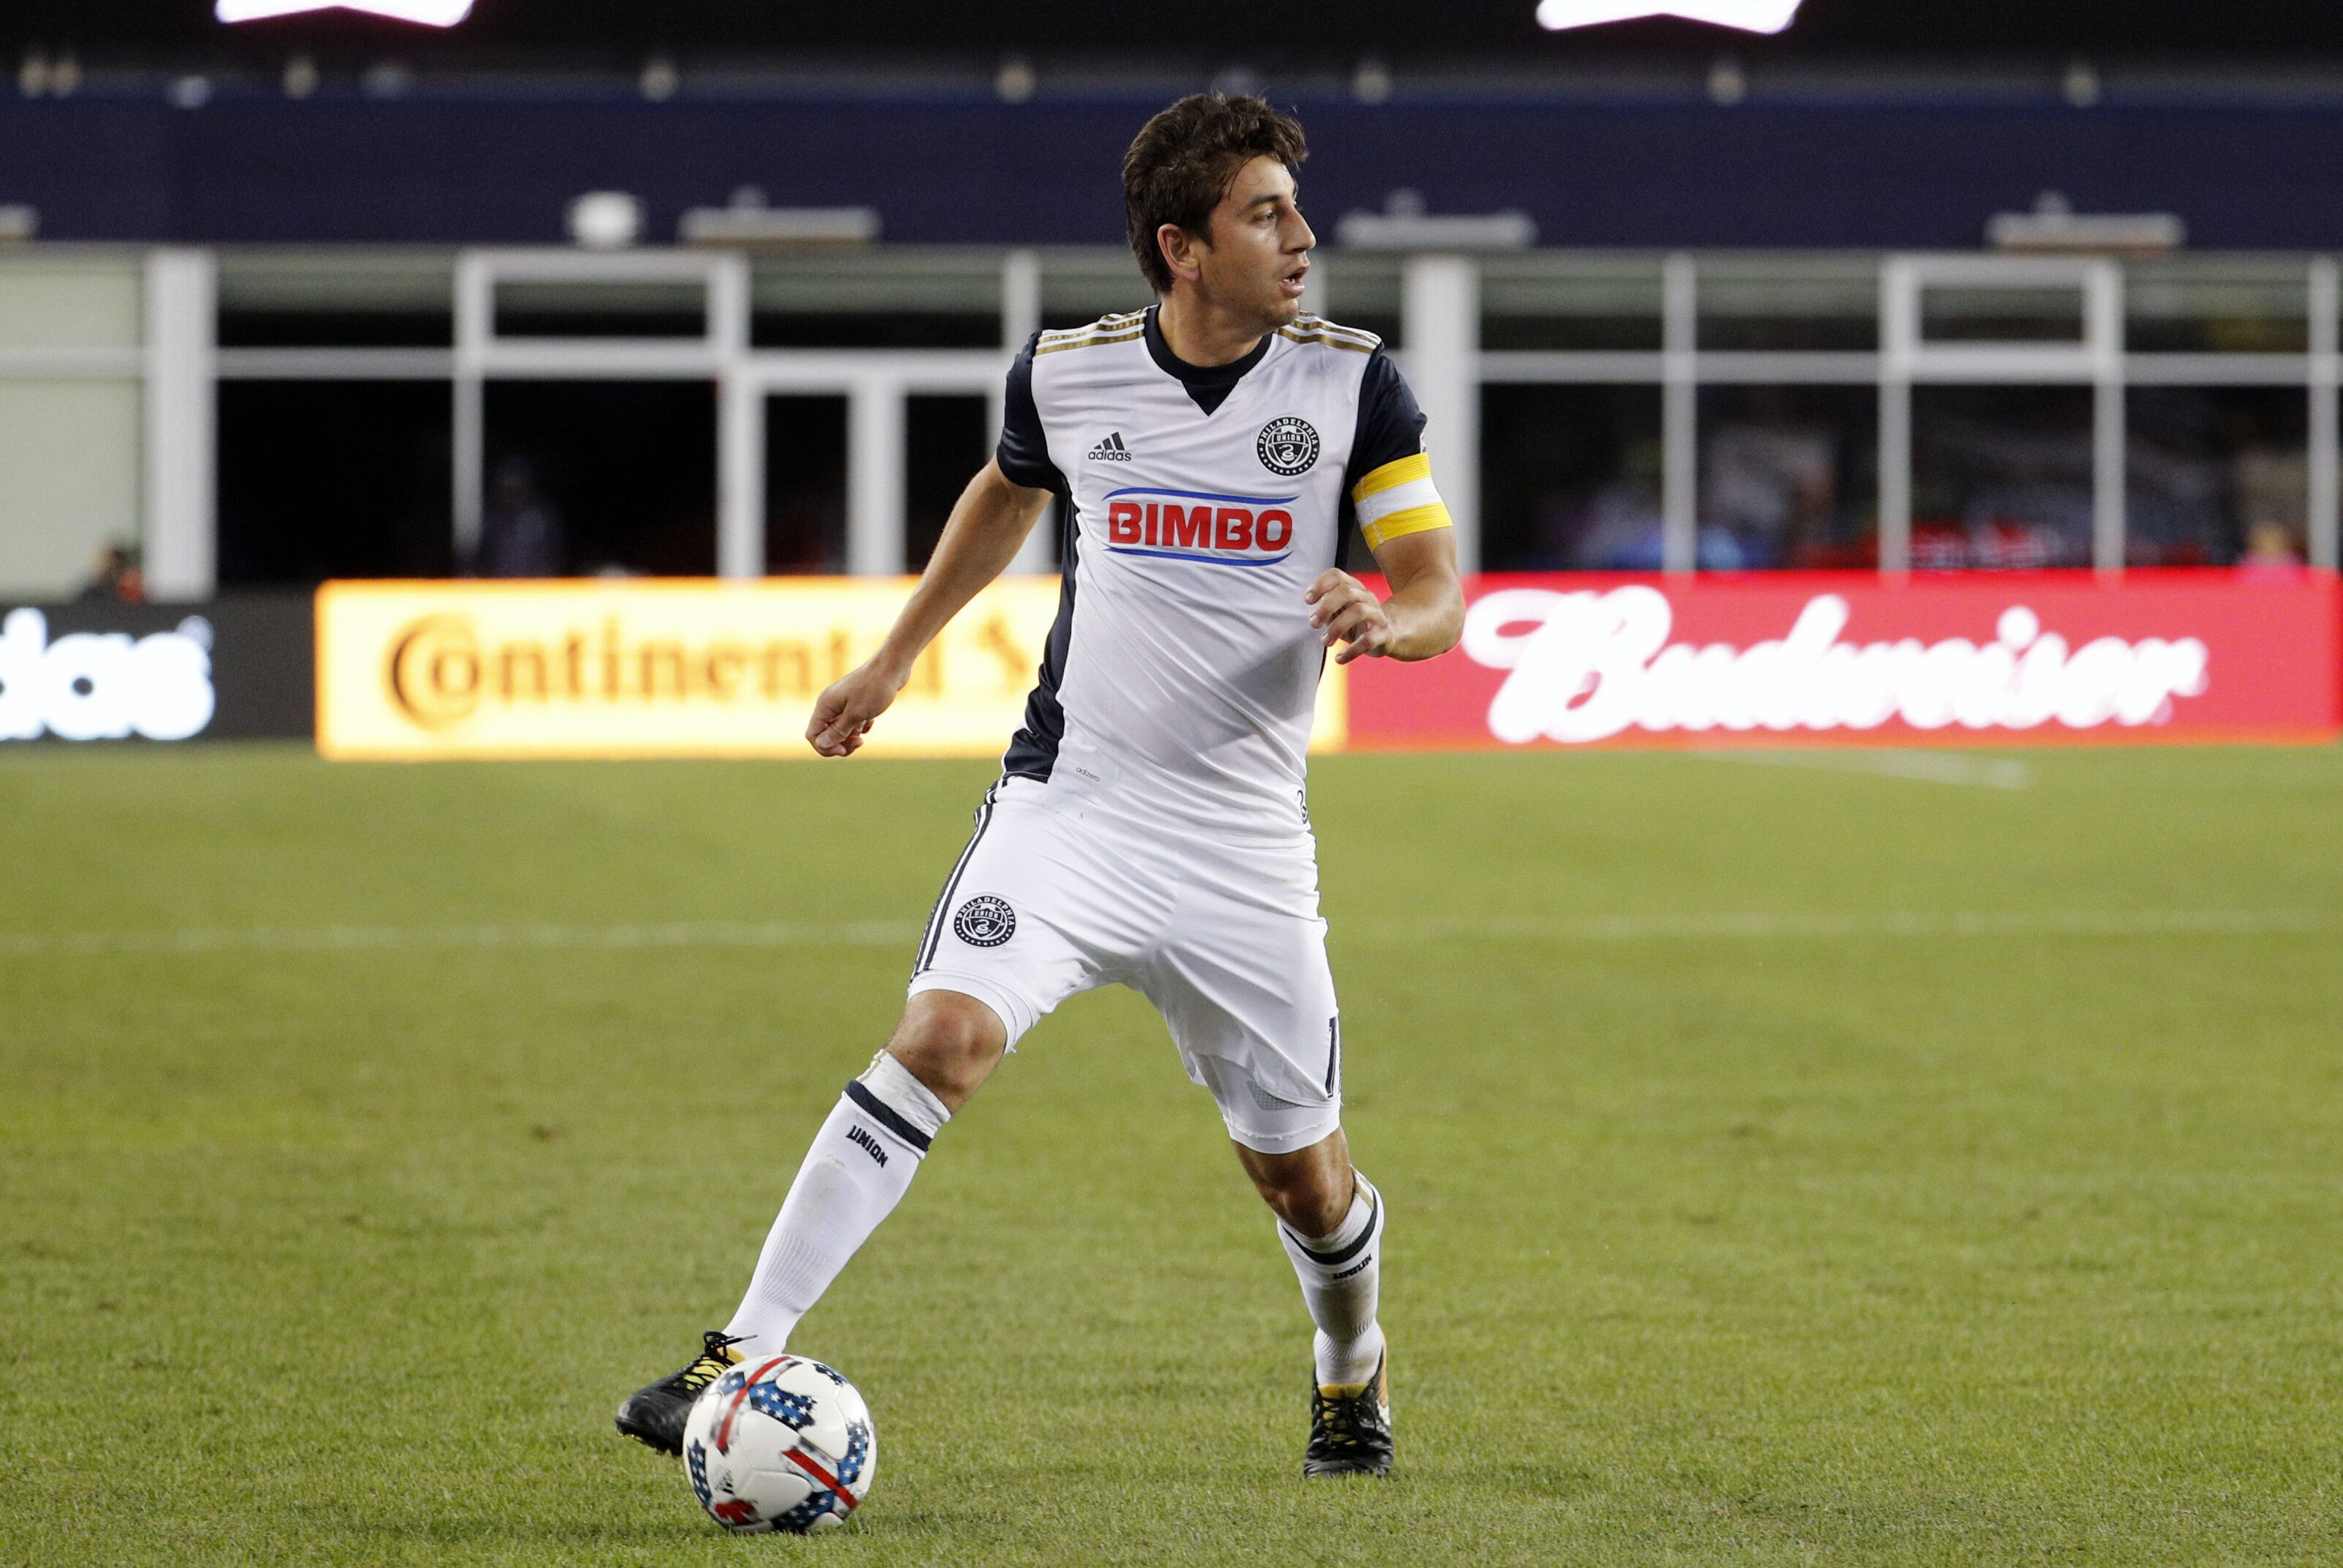 824381716-soccer-jul-29-mls-philadelphia-union-at-ne-revolution.jpg